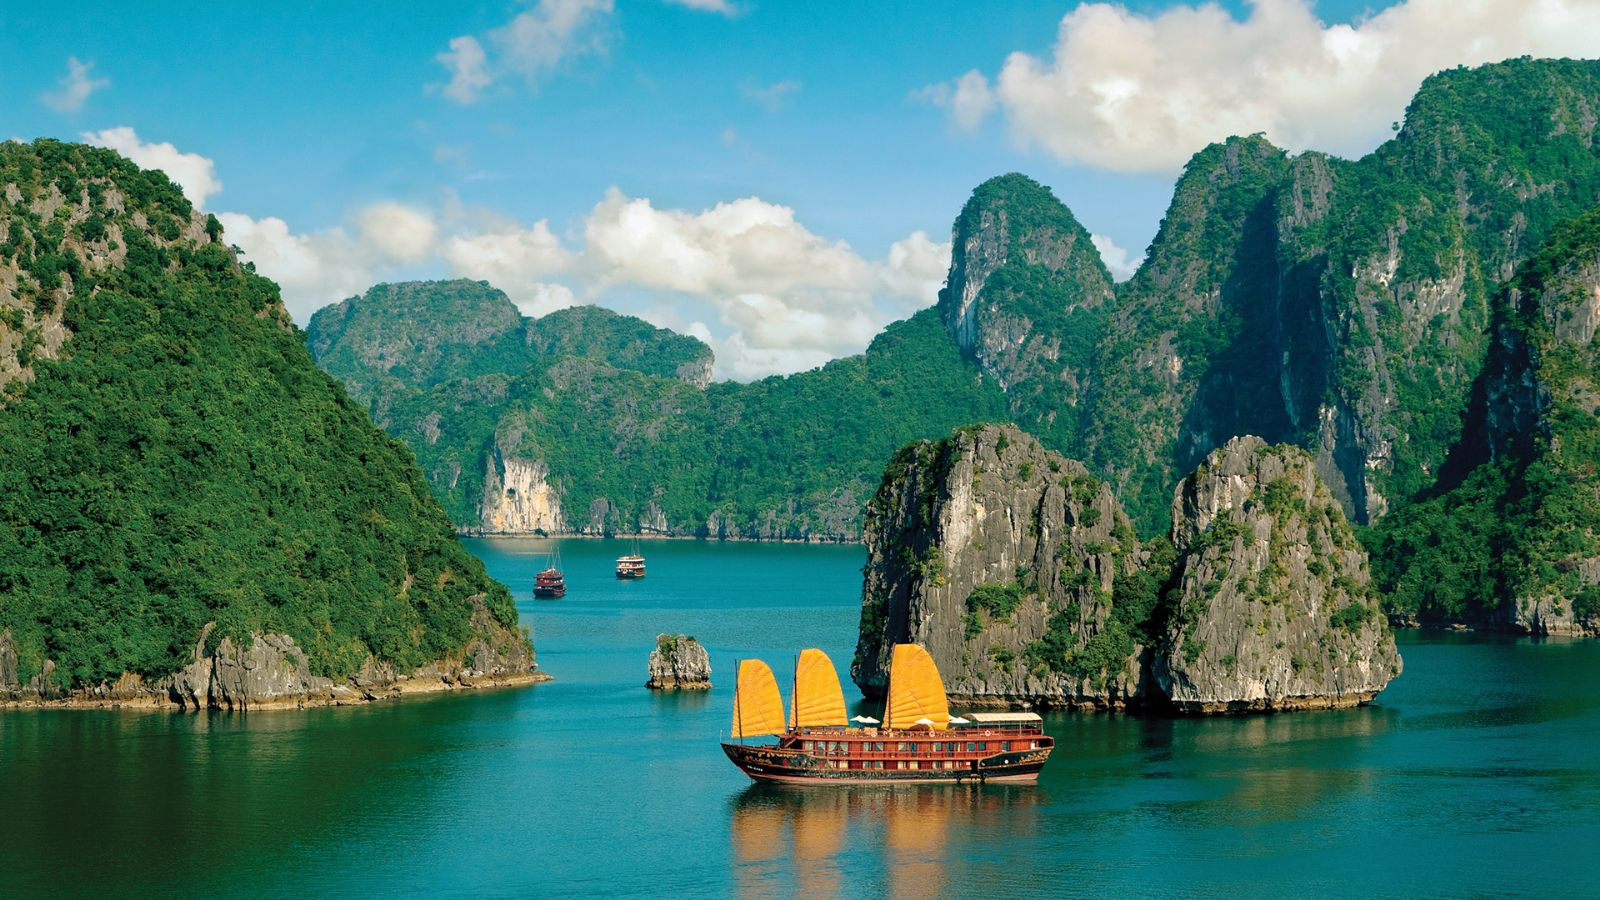 ALOVA PREMIUM CRUISES-HALONG BAY 1 DAY TOUR